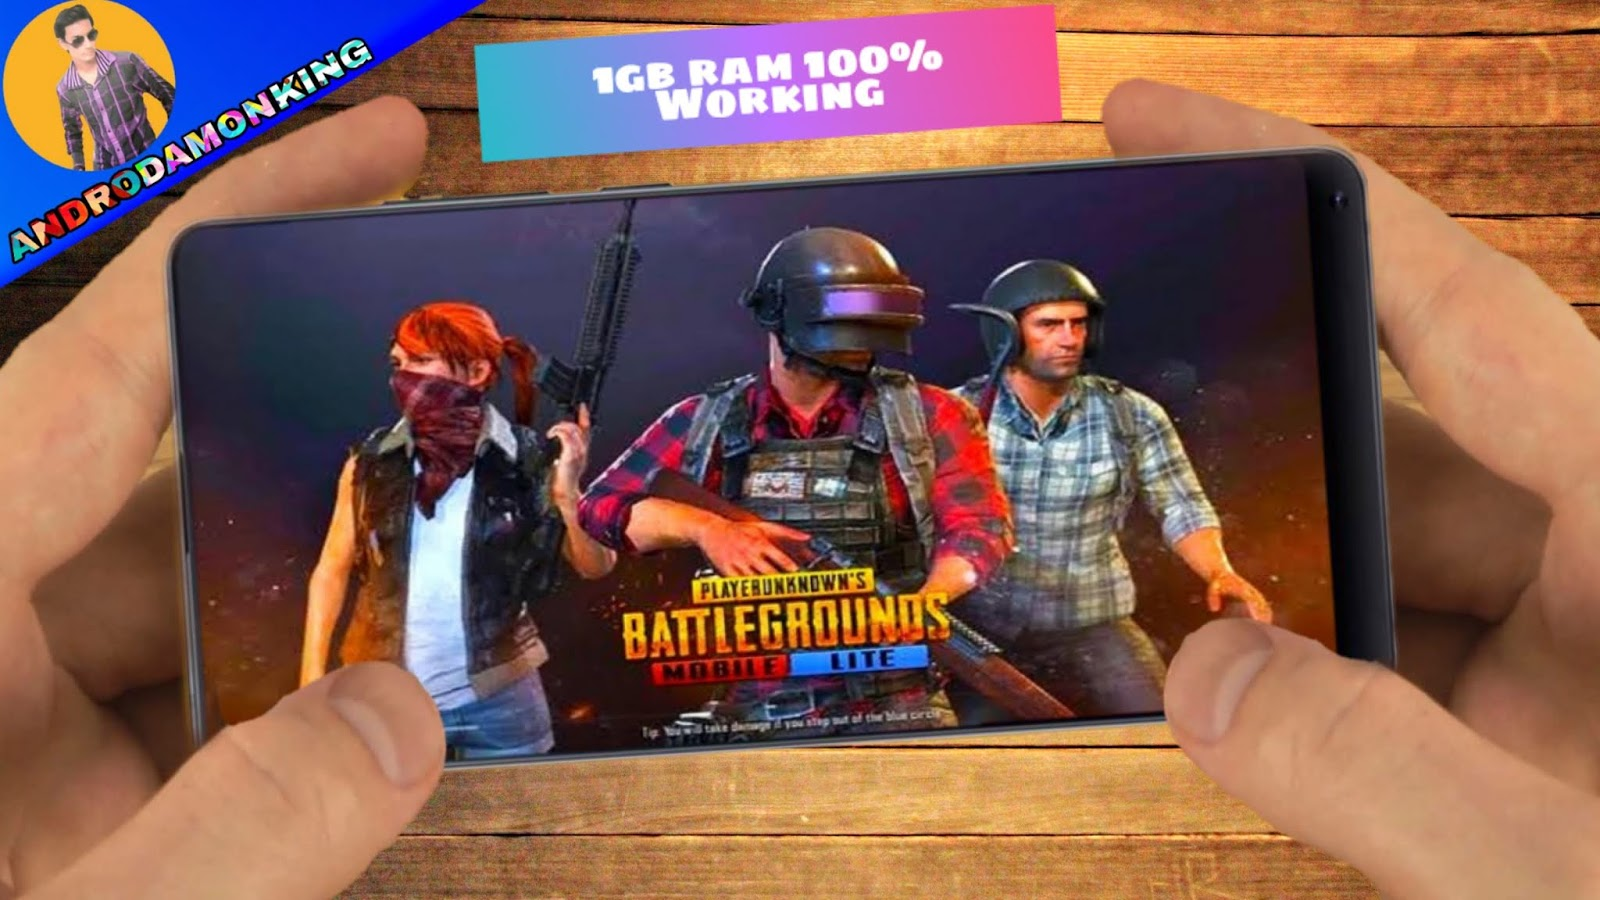 PUBG MOBILE LITE FOR ANDROID | NEW UPDATE | 1GB RAM 100